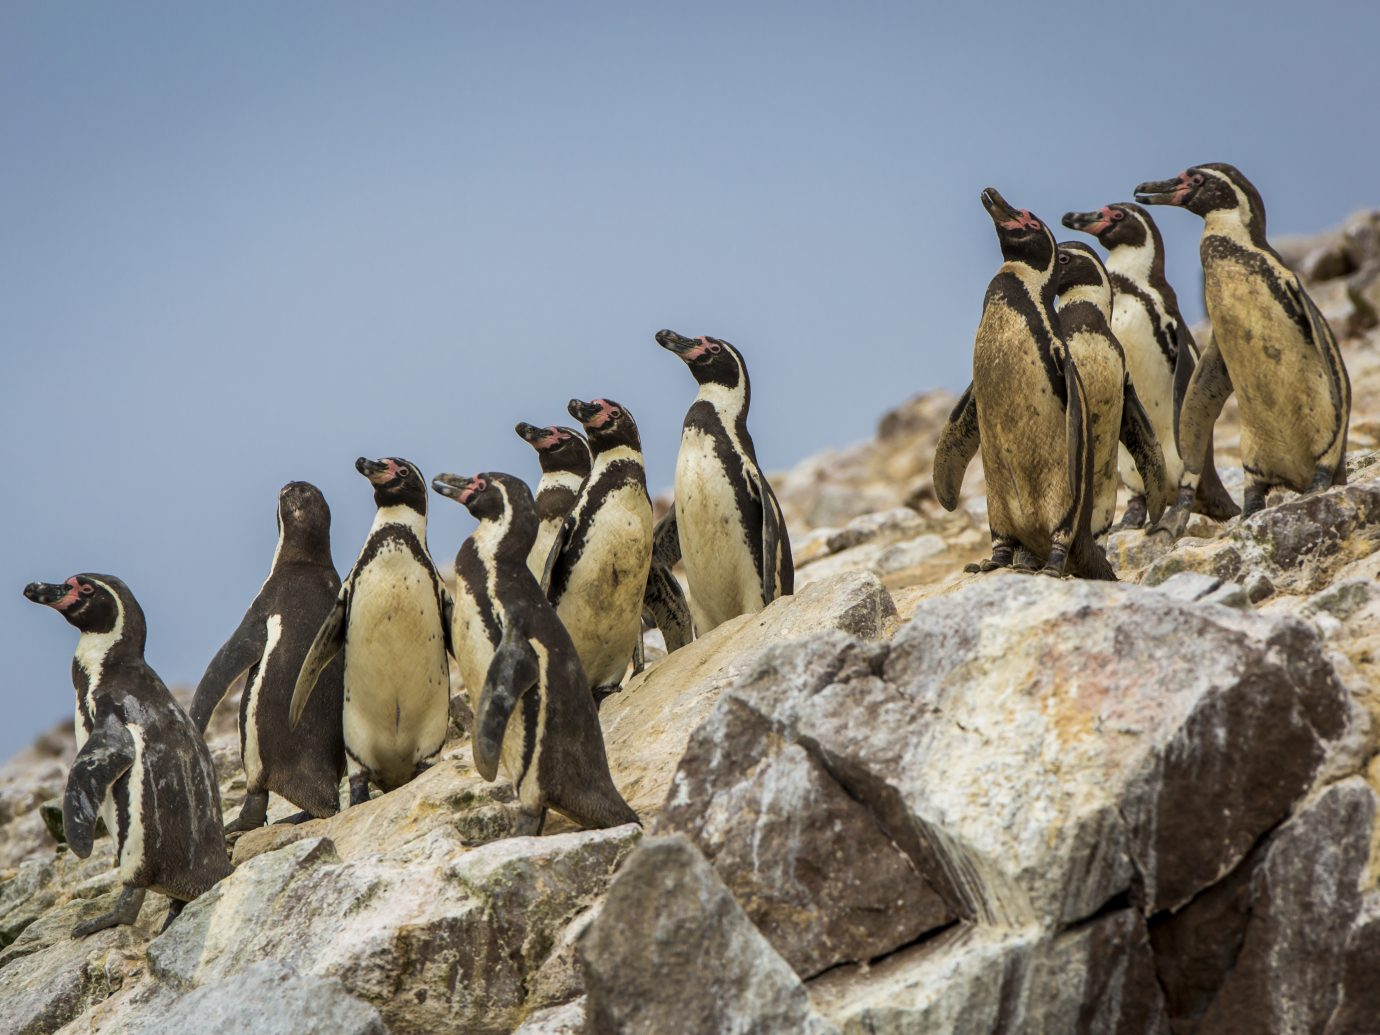 Peruvian penguins on Ballestas Islands in the Pacific Ocean.